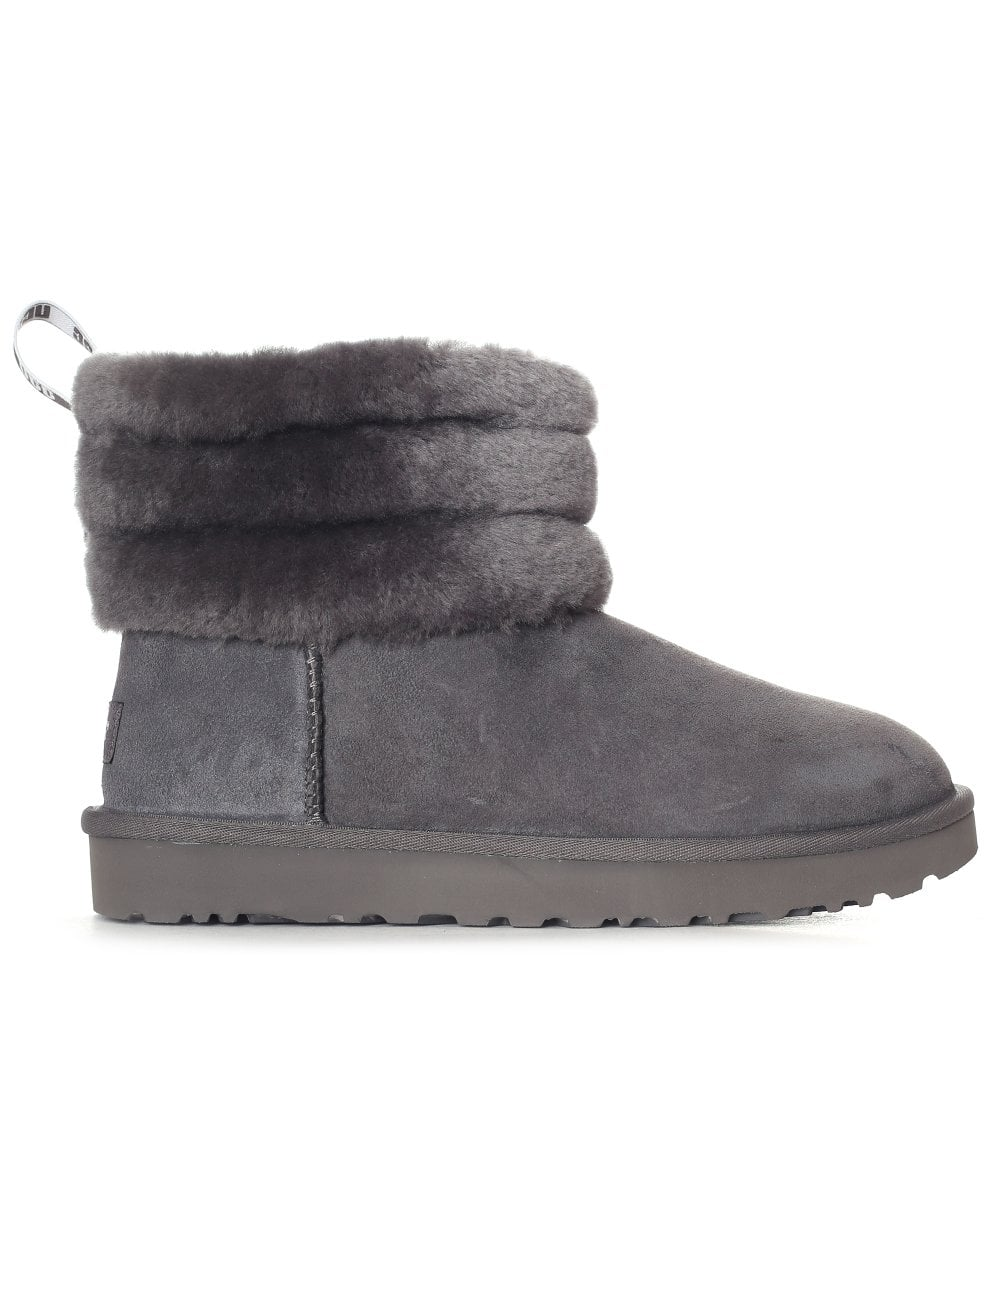 f1de251caa17 Ugg Women s Fluff Mini Quilted Boot